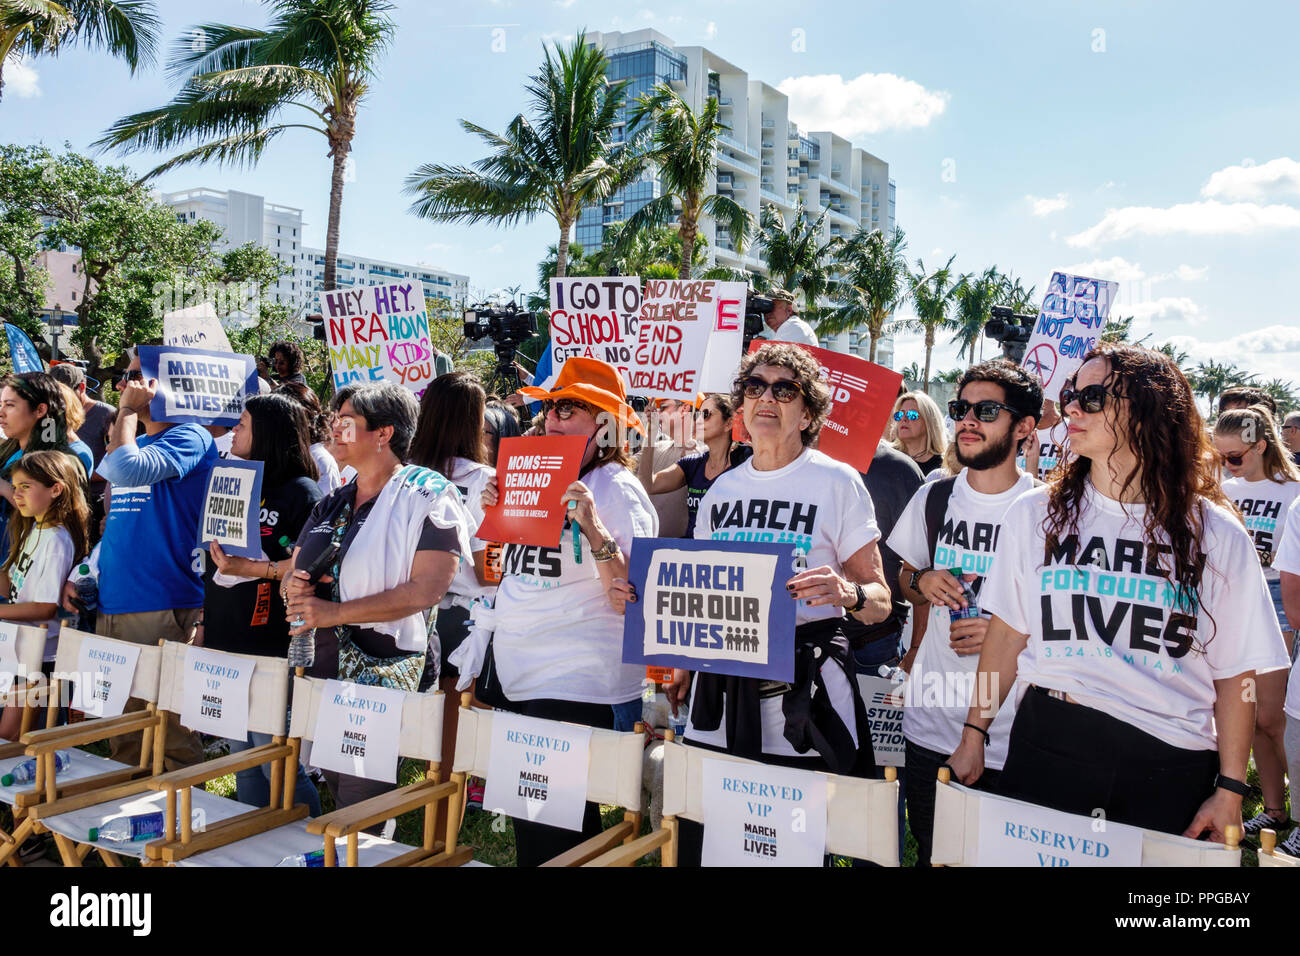 Miami Beach Florida Collins Park March For Our Lives public high school shootings gun violence protest student signs posters woman mothers holding - Stock Image